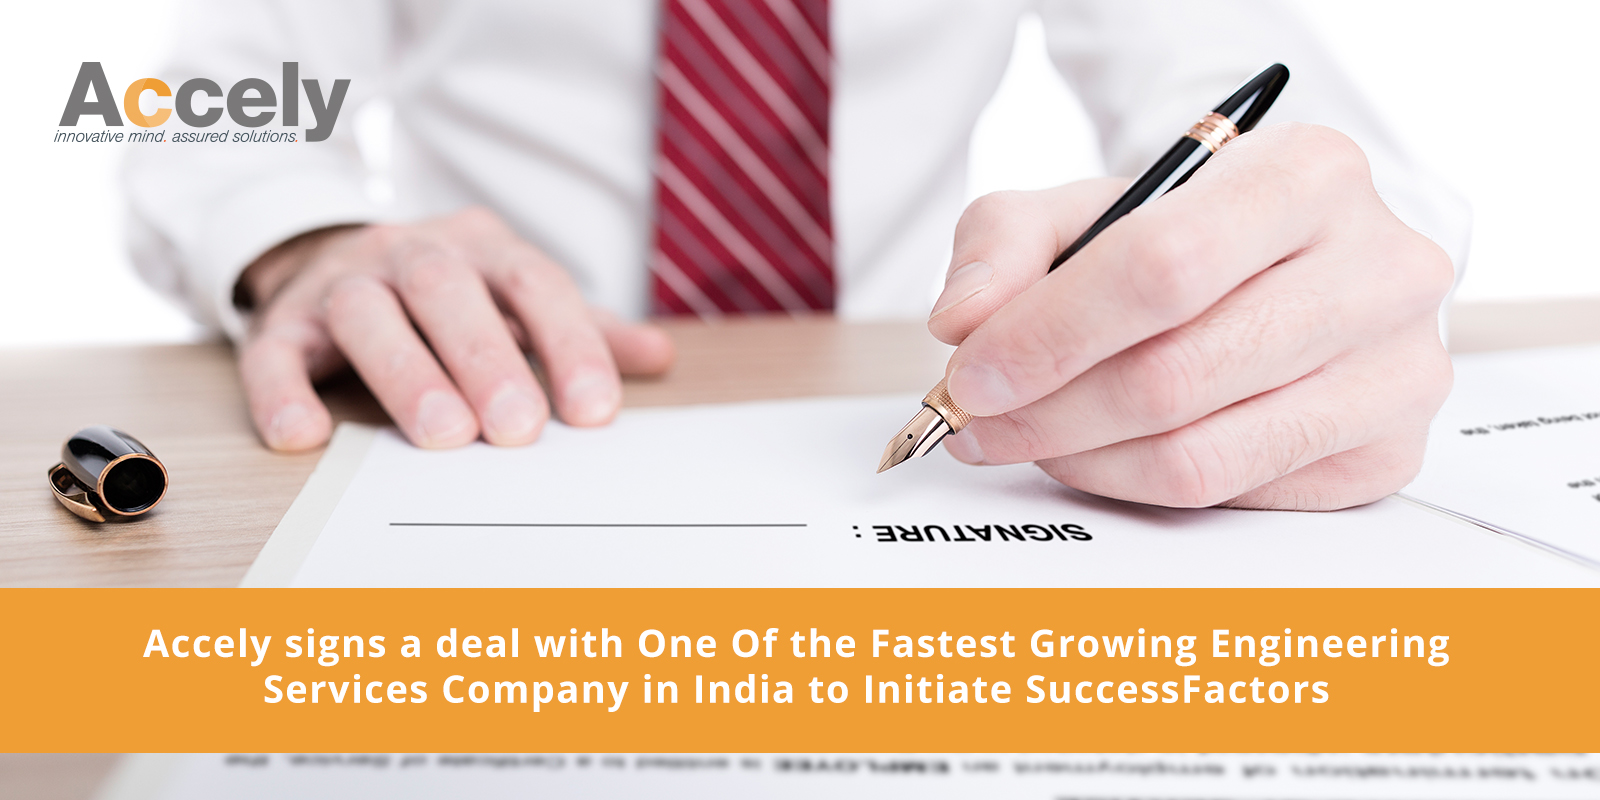 Accely Signs a Deal with One Of the Fastest Growing Engineering Services Company in India to Initiate SuccessFactors